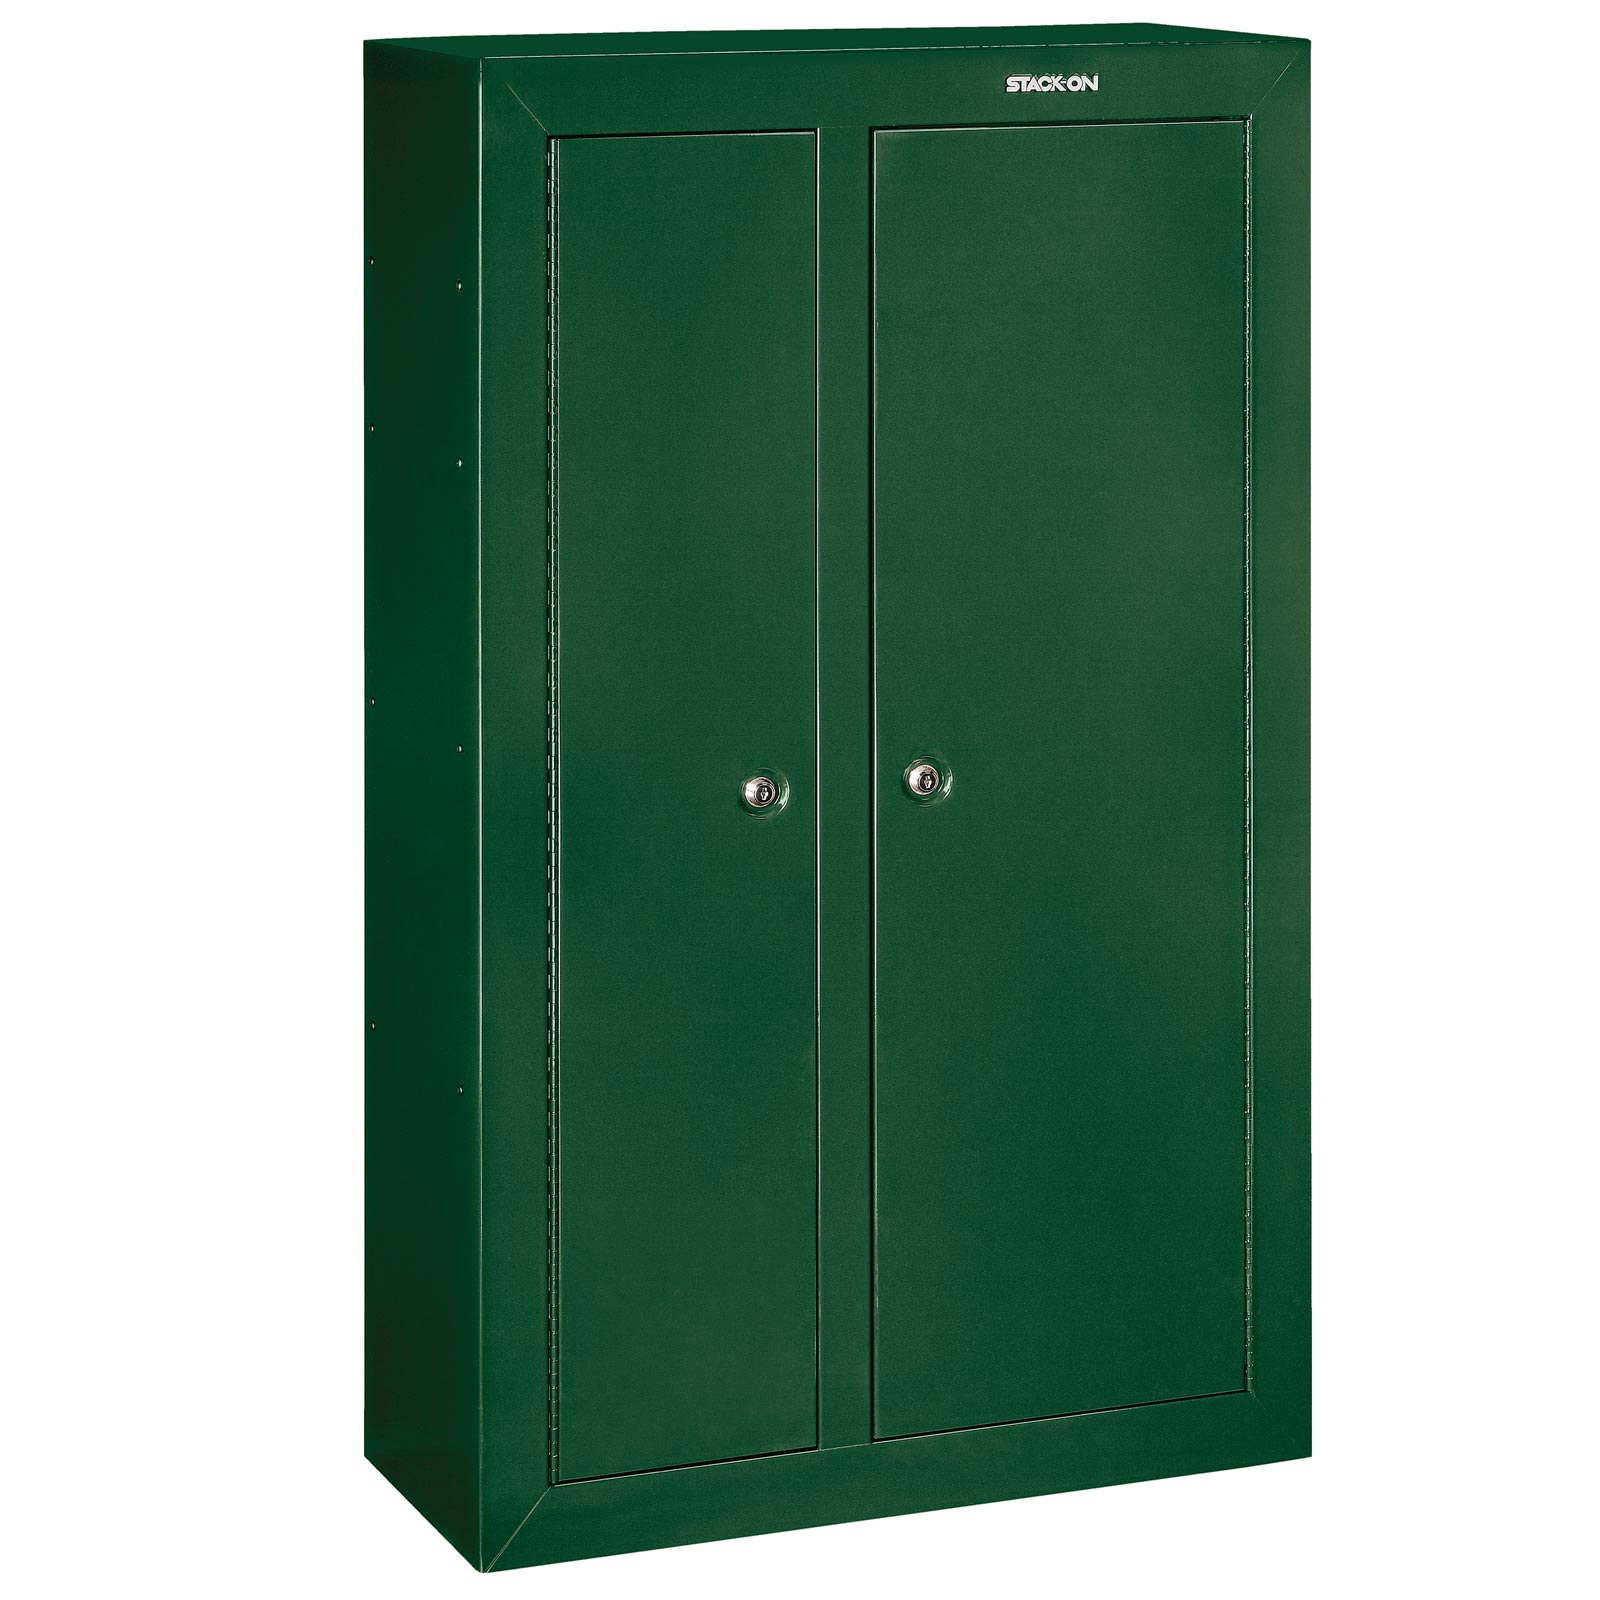 Stack on gcdg 924 gun cabinet double door security cabinet for 10 gun double door steel security cabinet